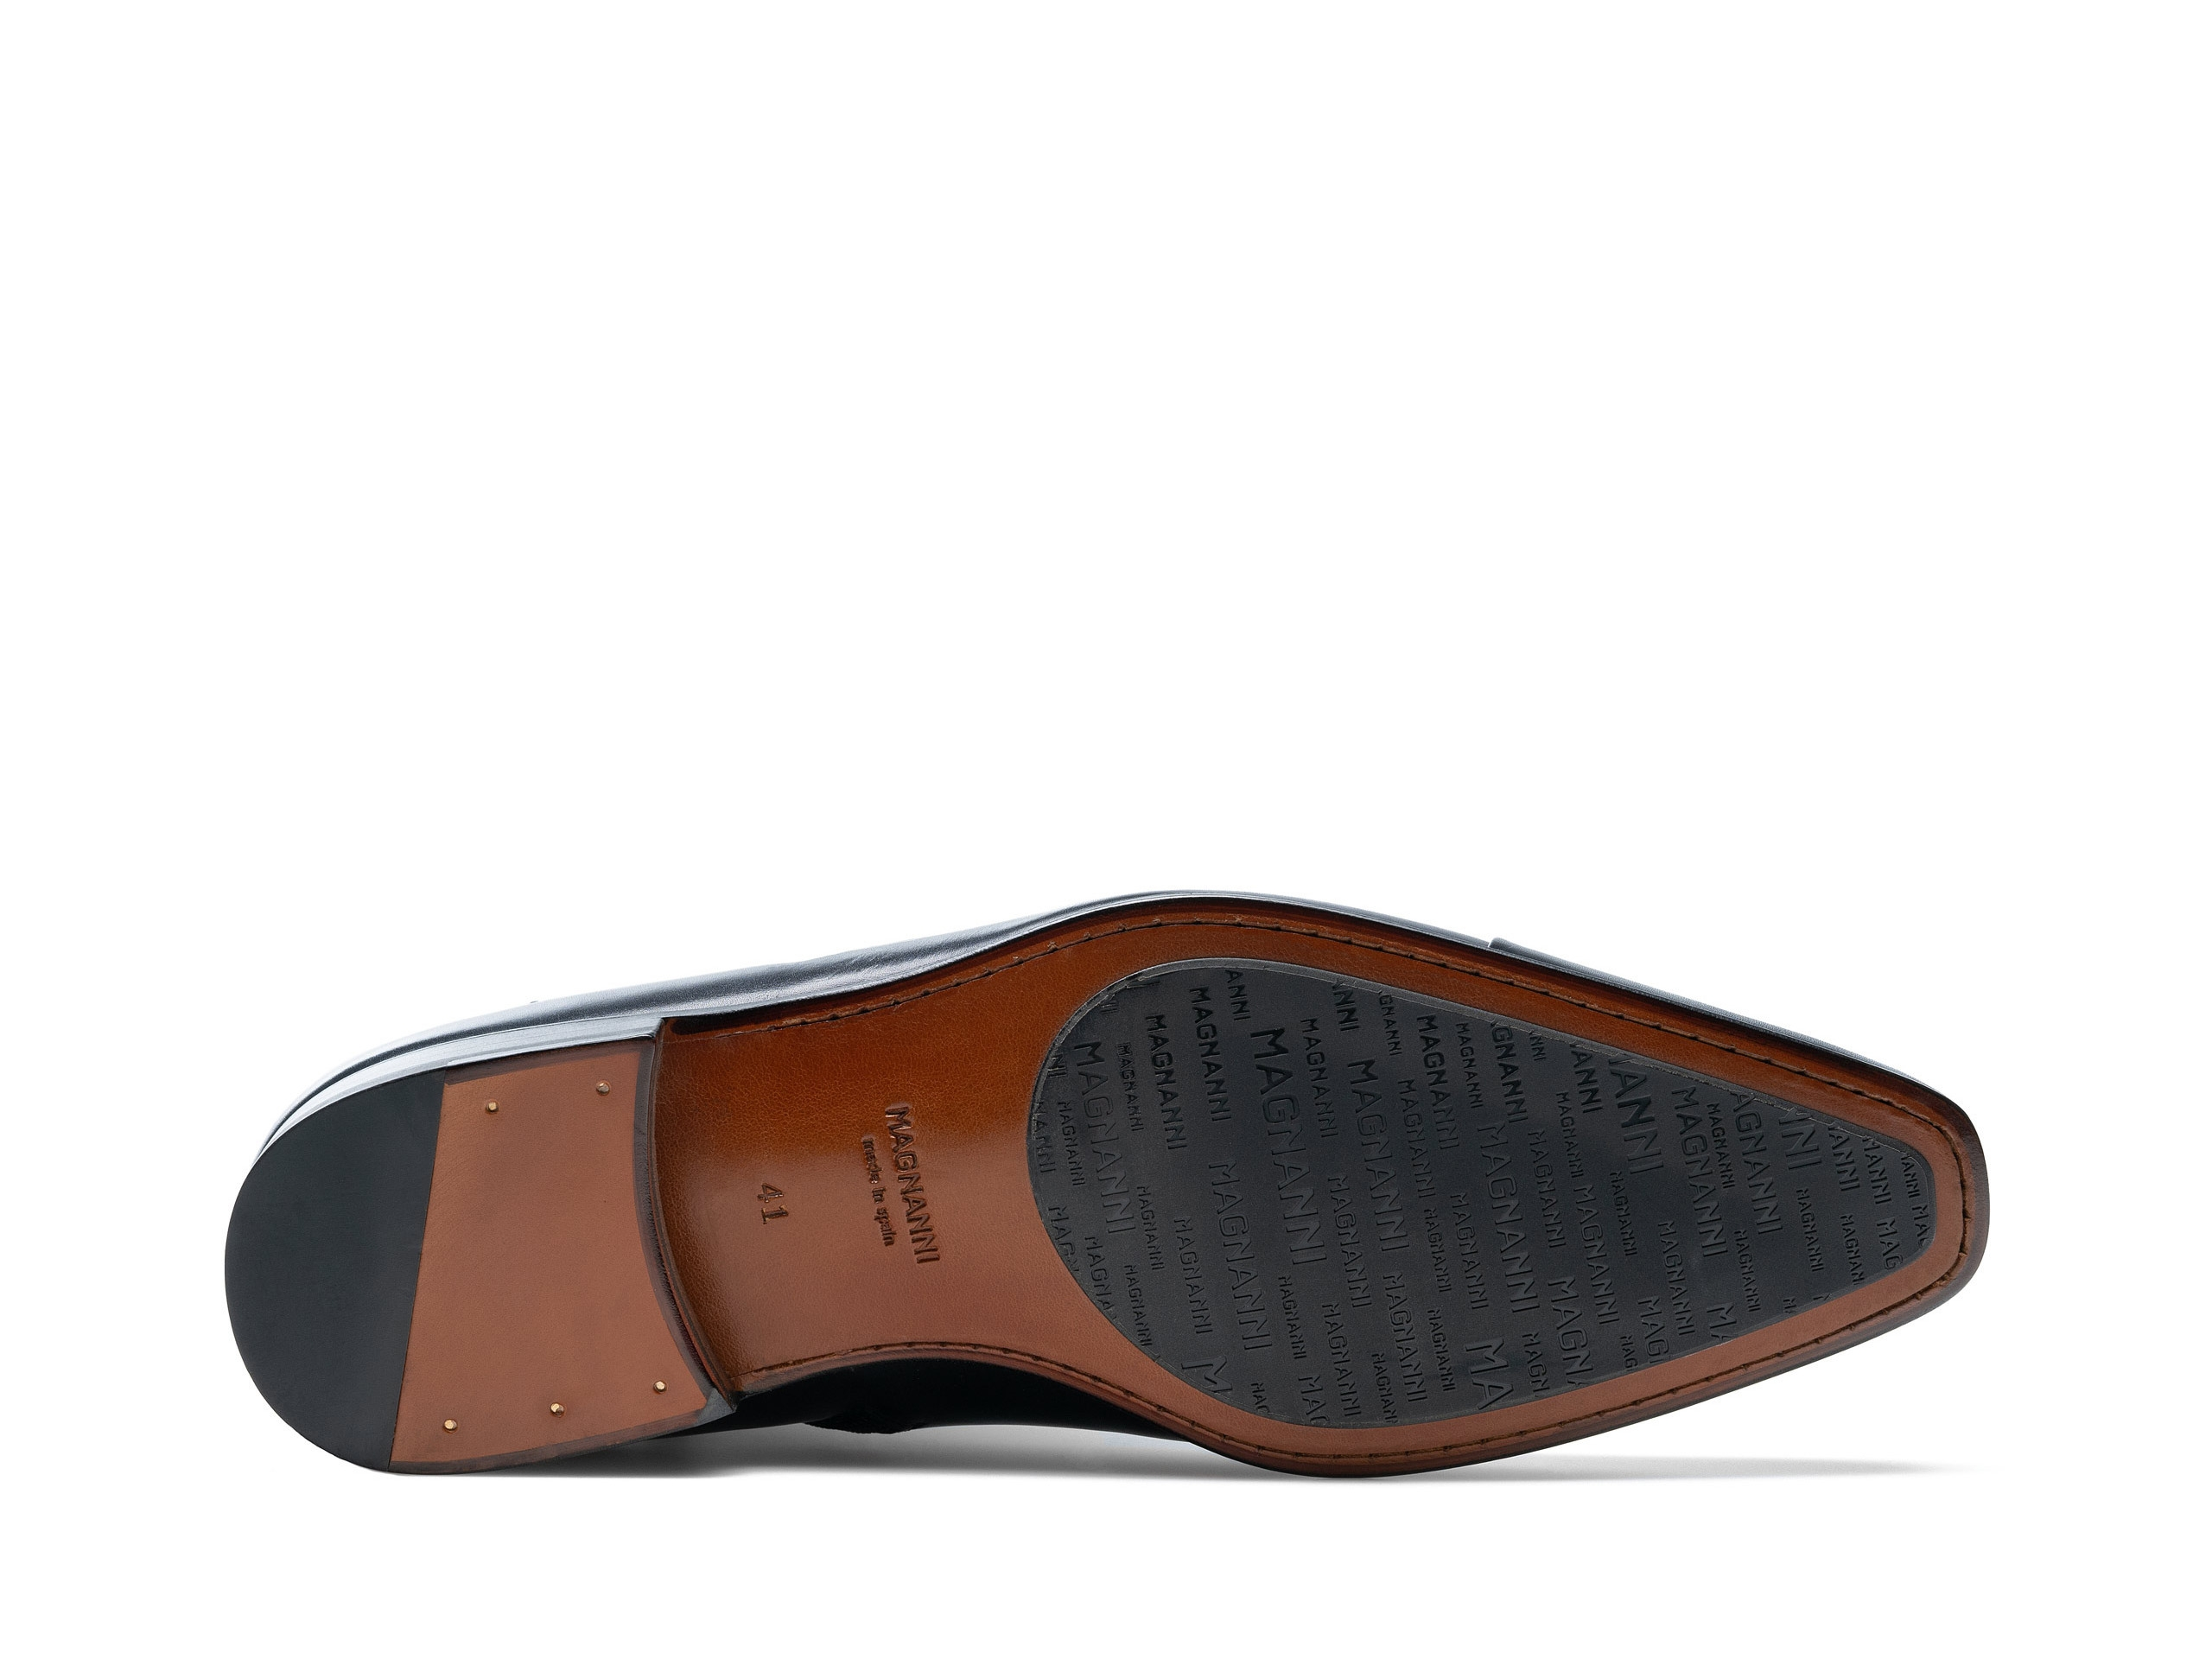 The sole of the Olmedo